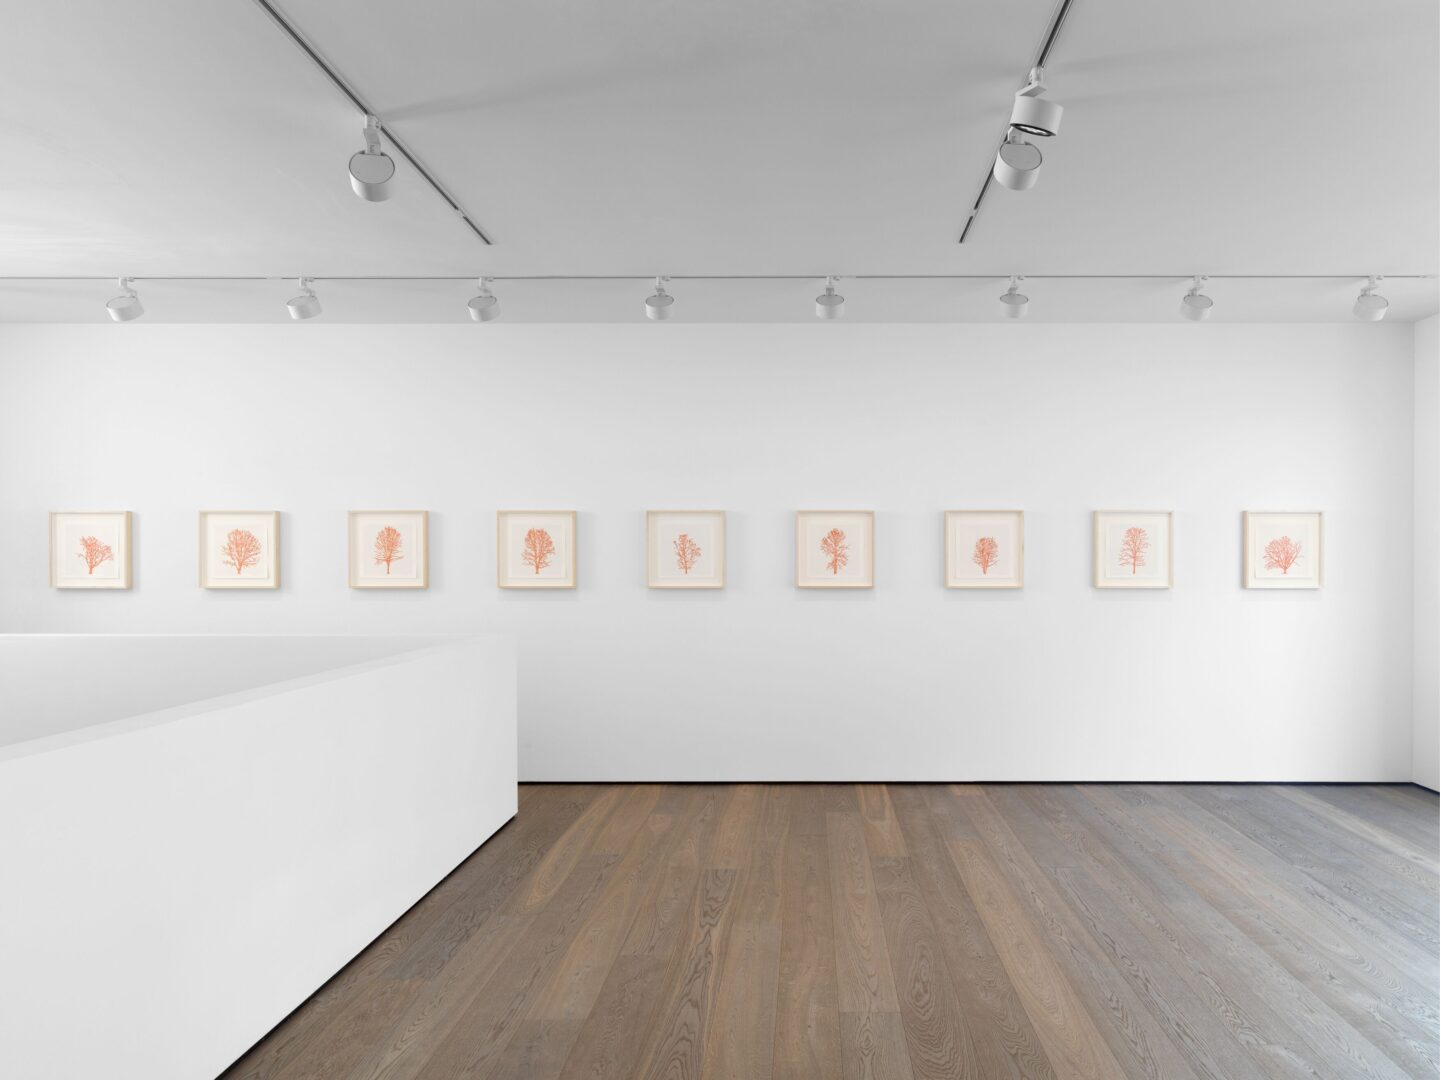 Exhibition View Charles Gaines Soloshow «Drawings» at Hauser & Wirth, St. Moritz, 2020 / Photo: Fredrik Nilsen / © Charles Gaines / Courtesy: the artist and Hauser & Wirth